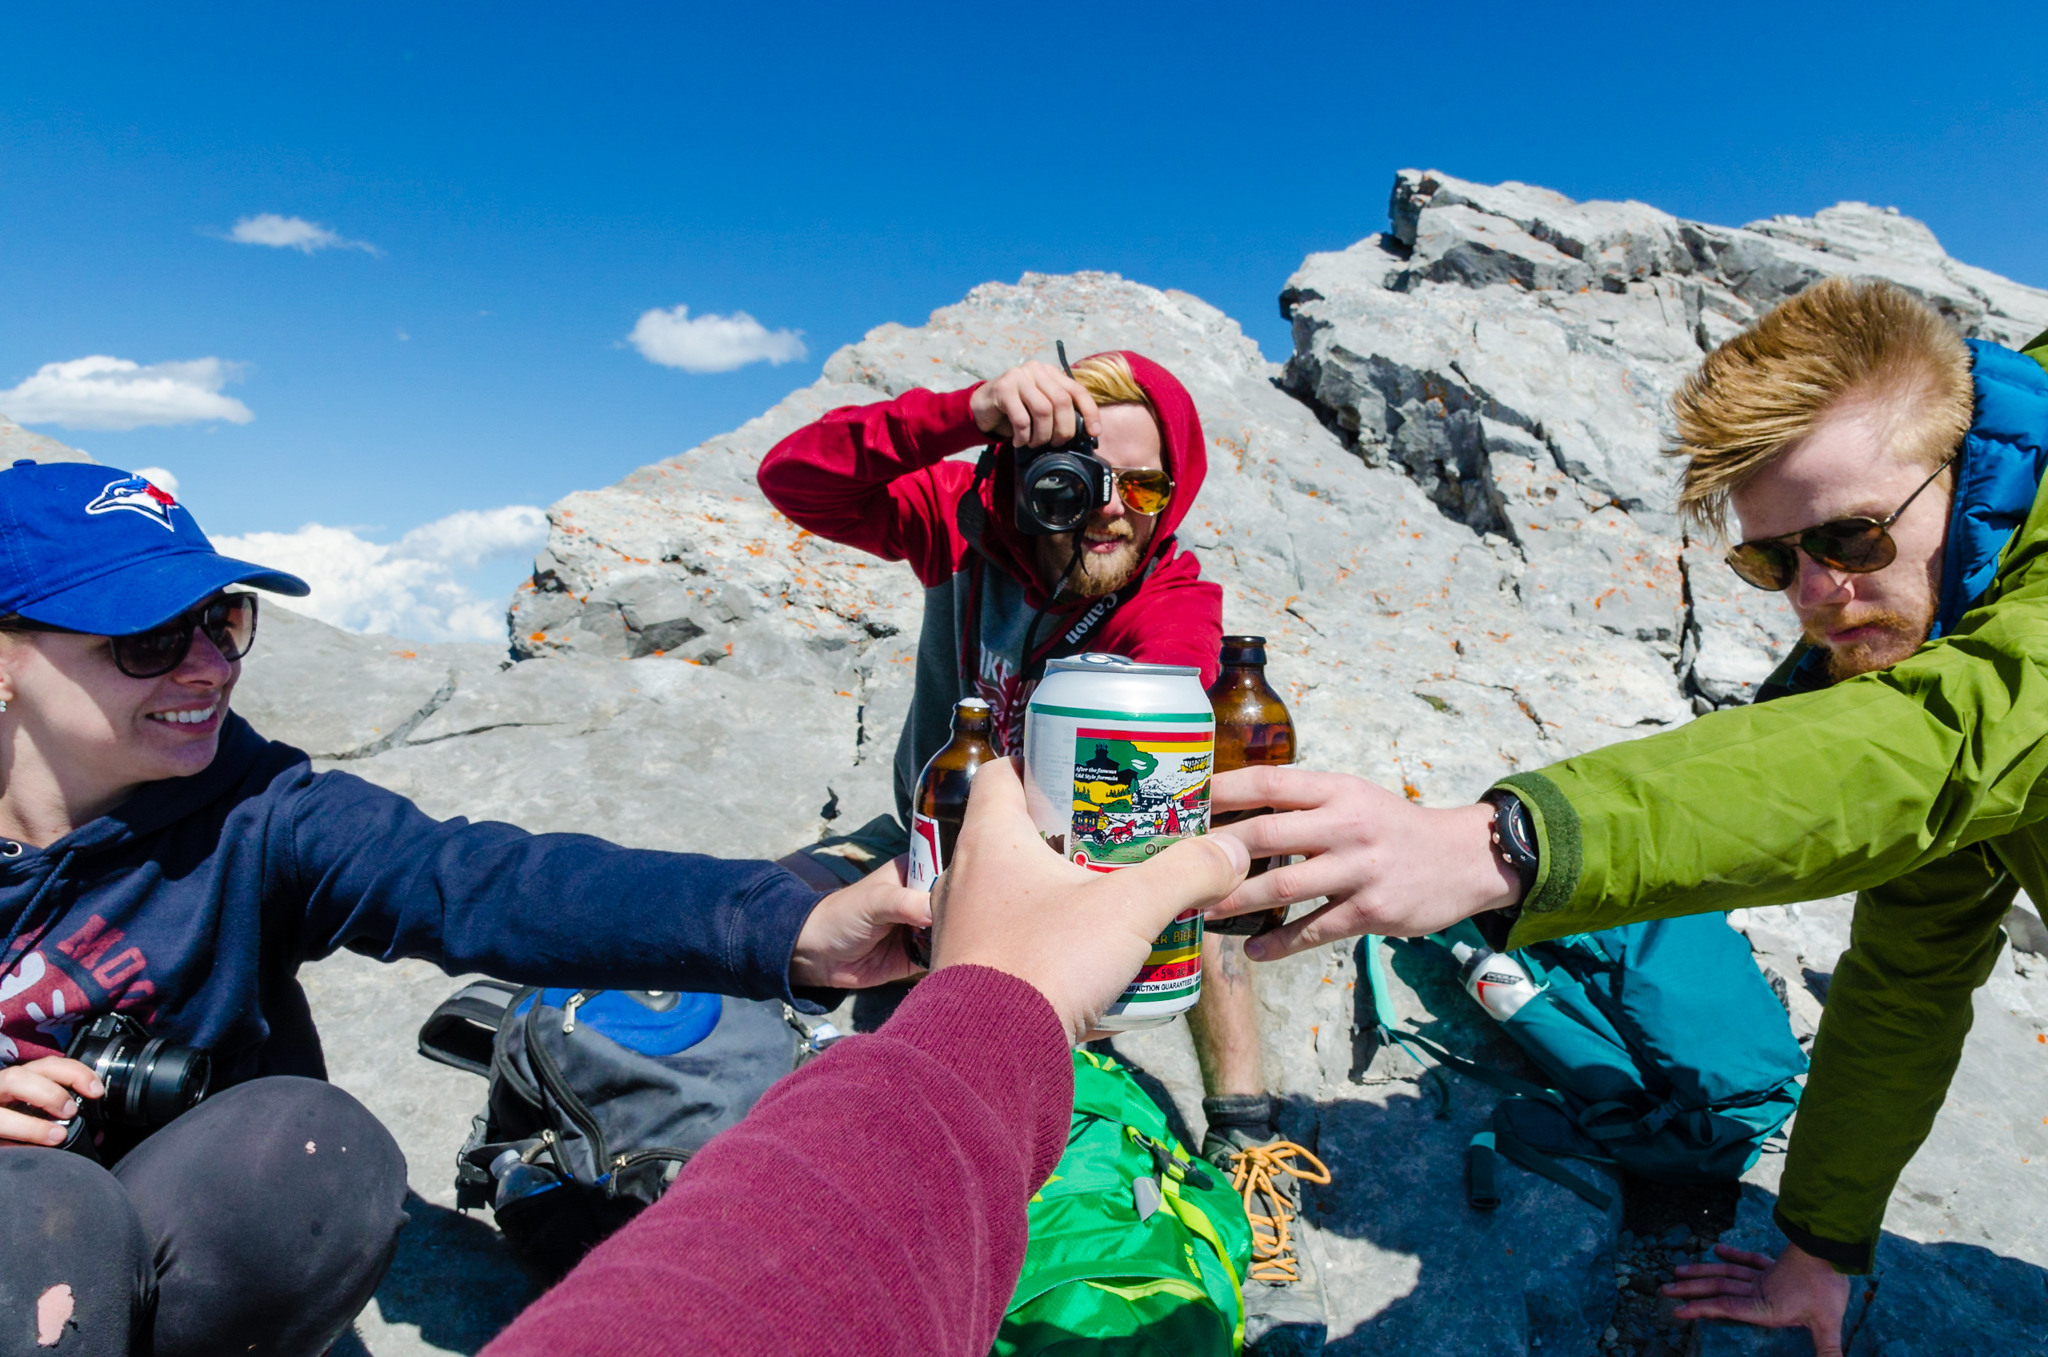 Summit beers became a tradition.